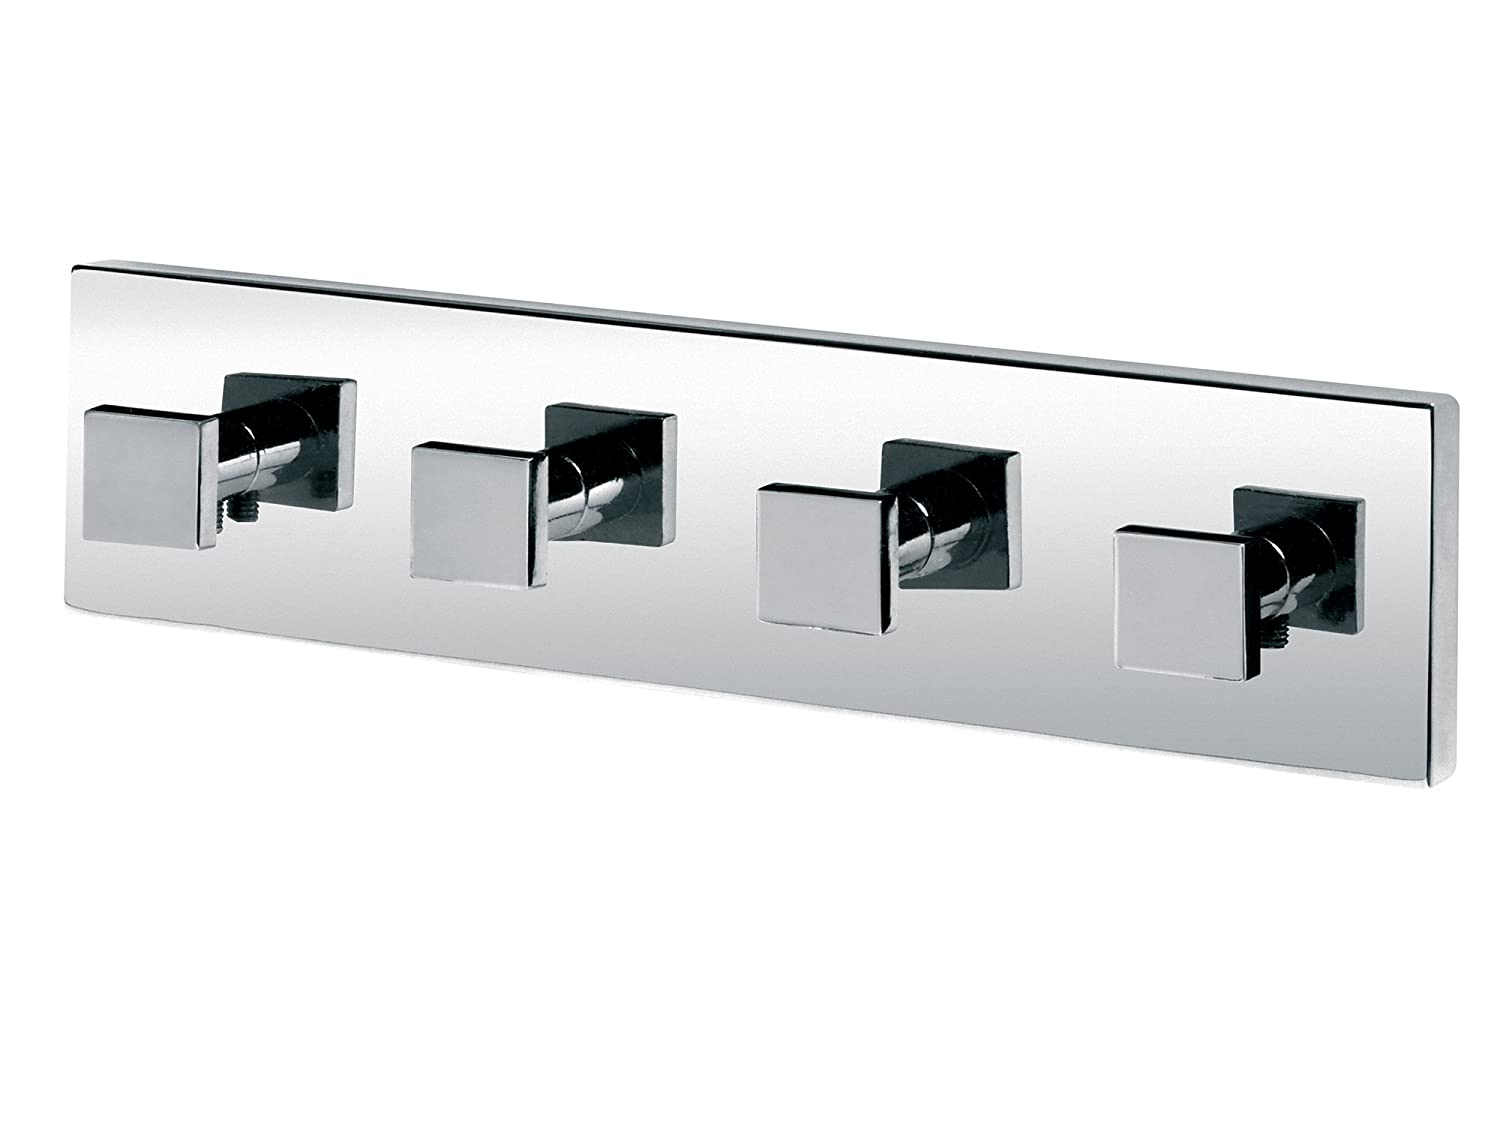 Bisk Arktic 01464 Multi Robe Hook in Chrome, 20 x 3 x 5 cm